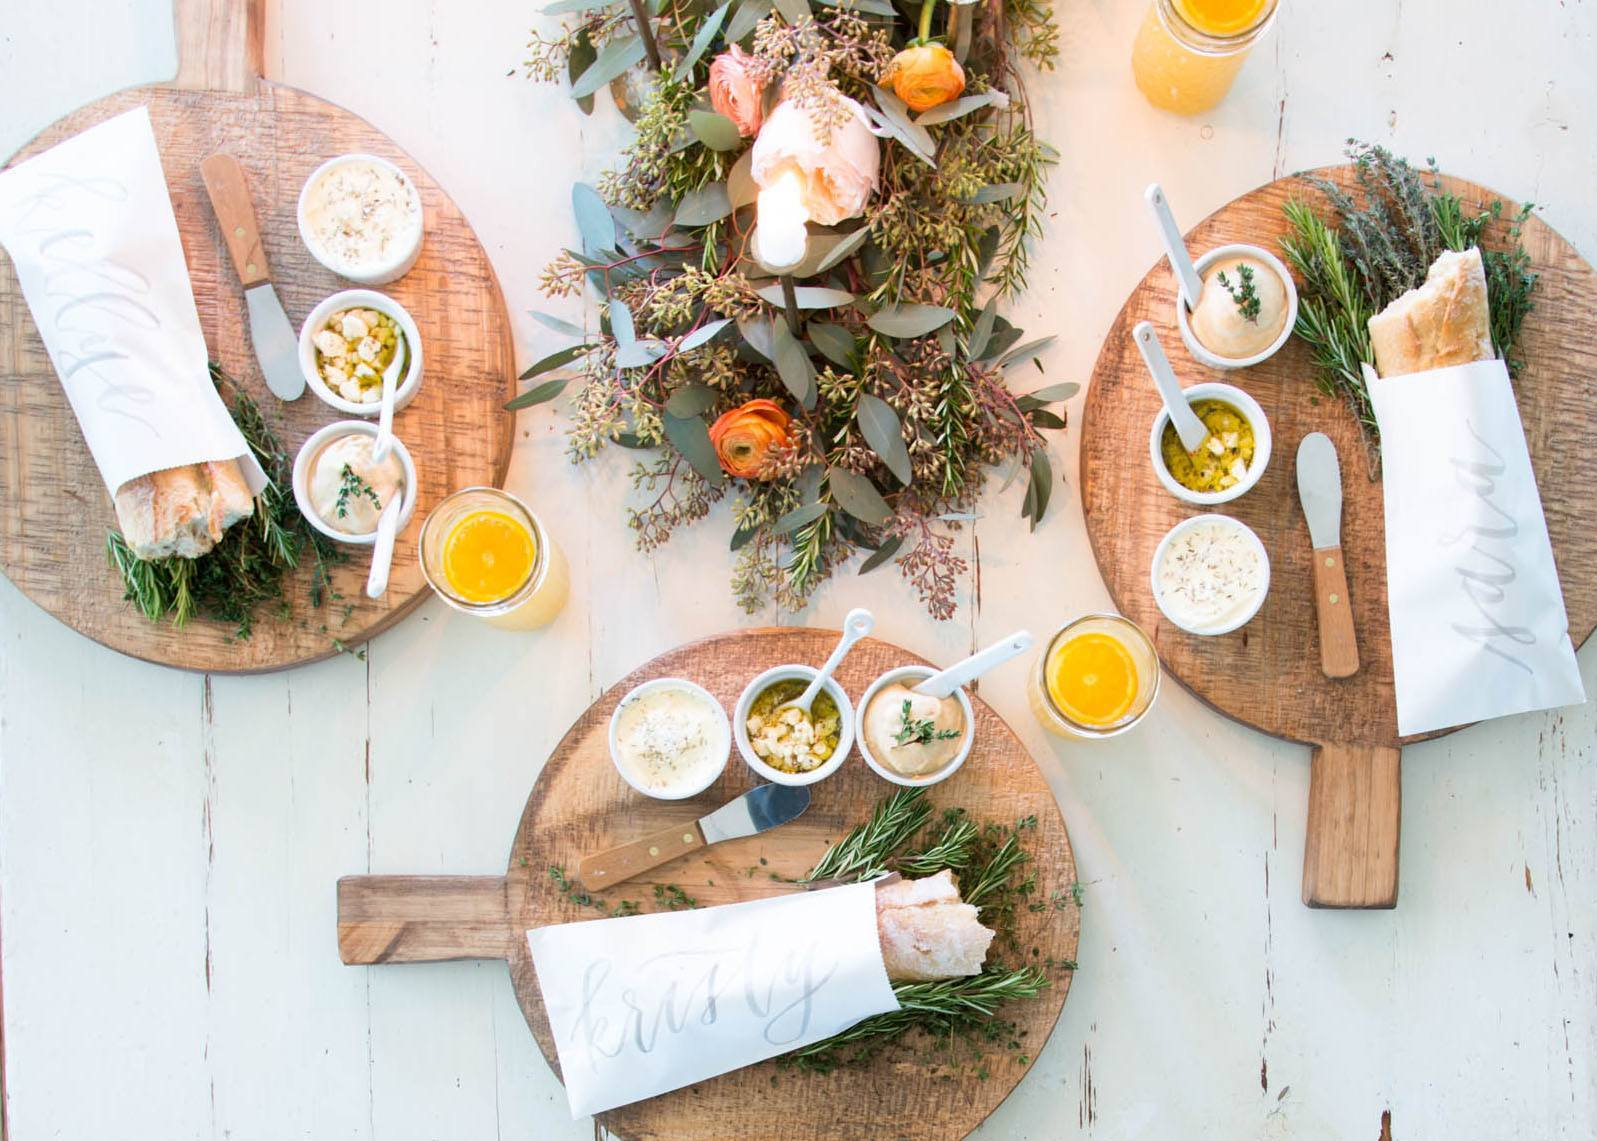 Joanna Gaines dinner party